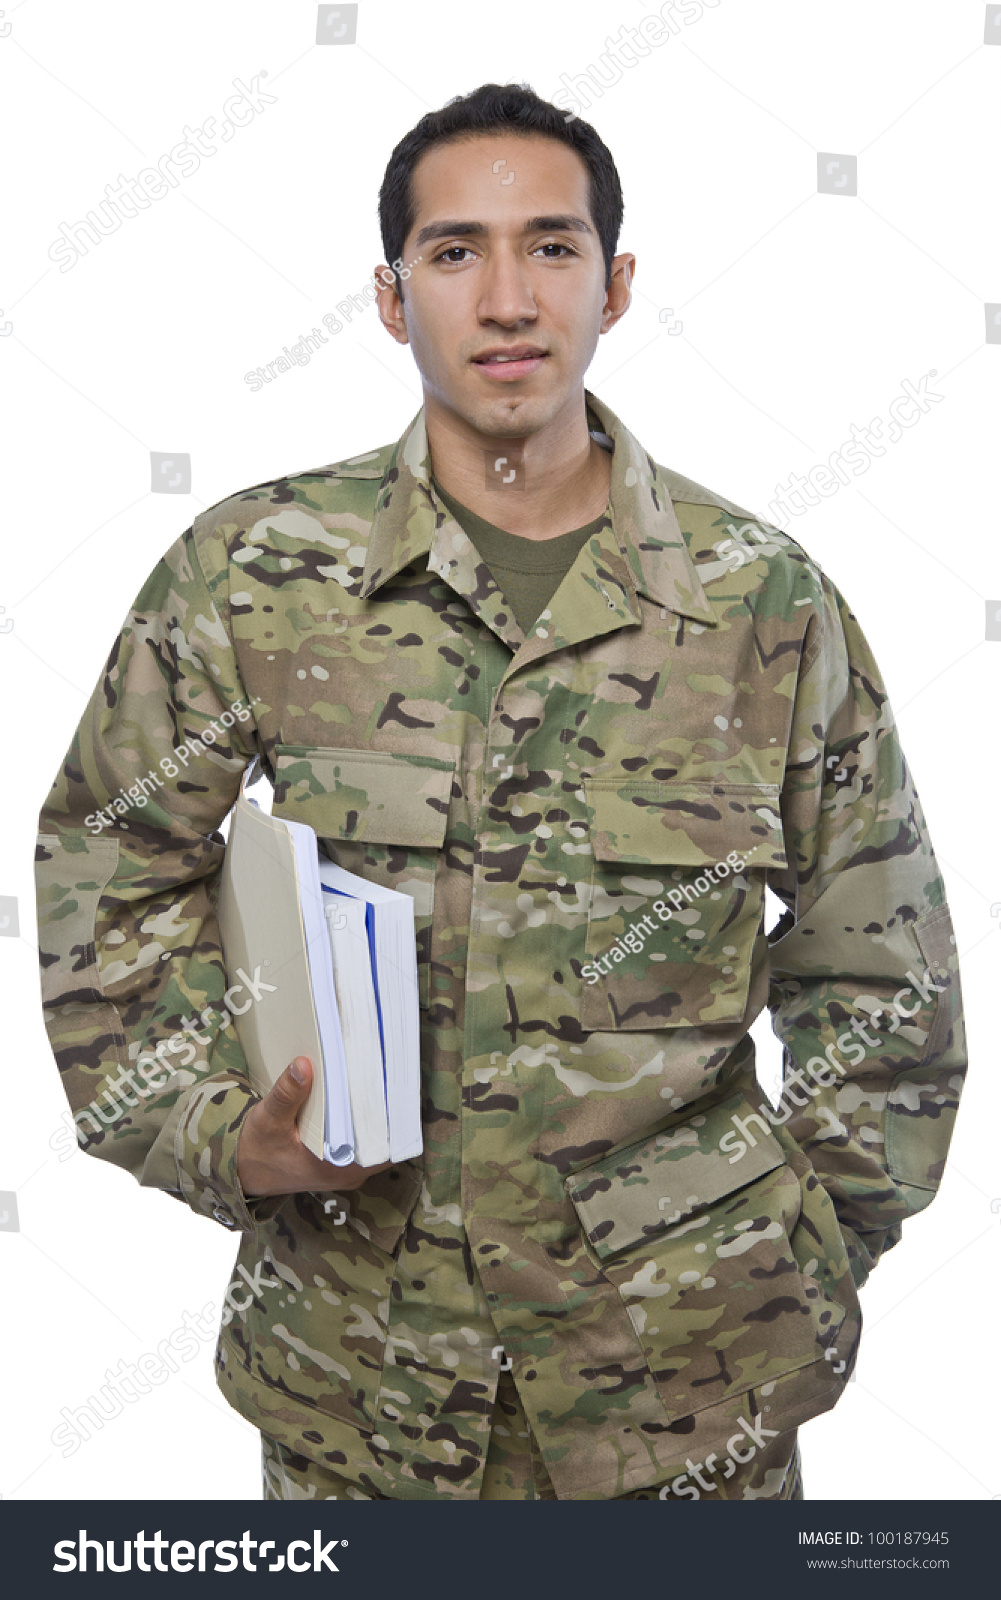 Tips on dating a military man